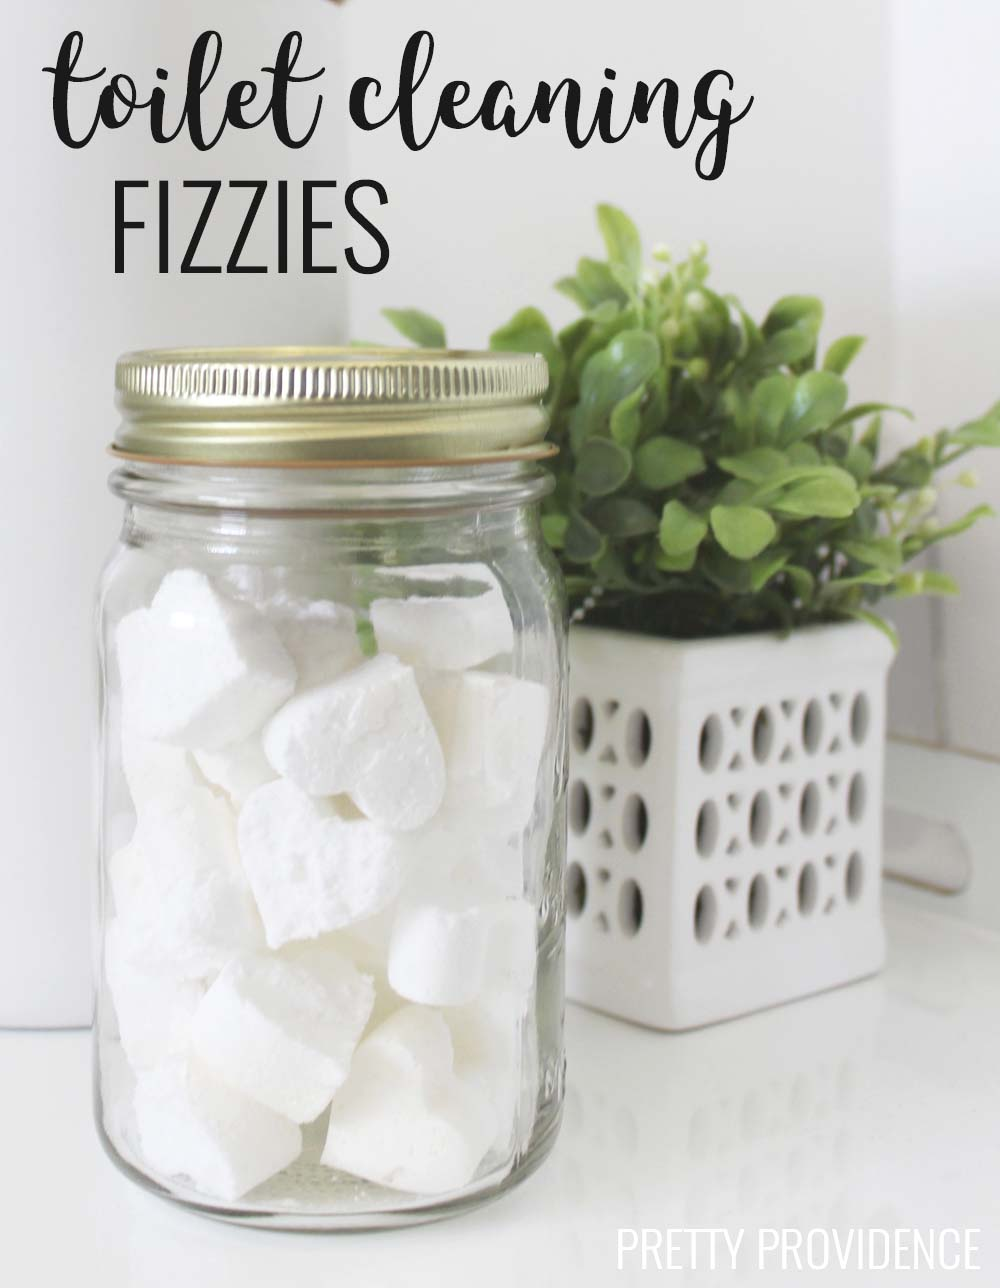 toilet-cleaning-fizzy-bombs-2.jpg